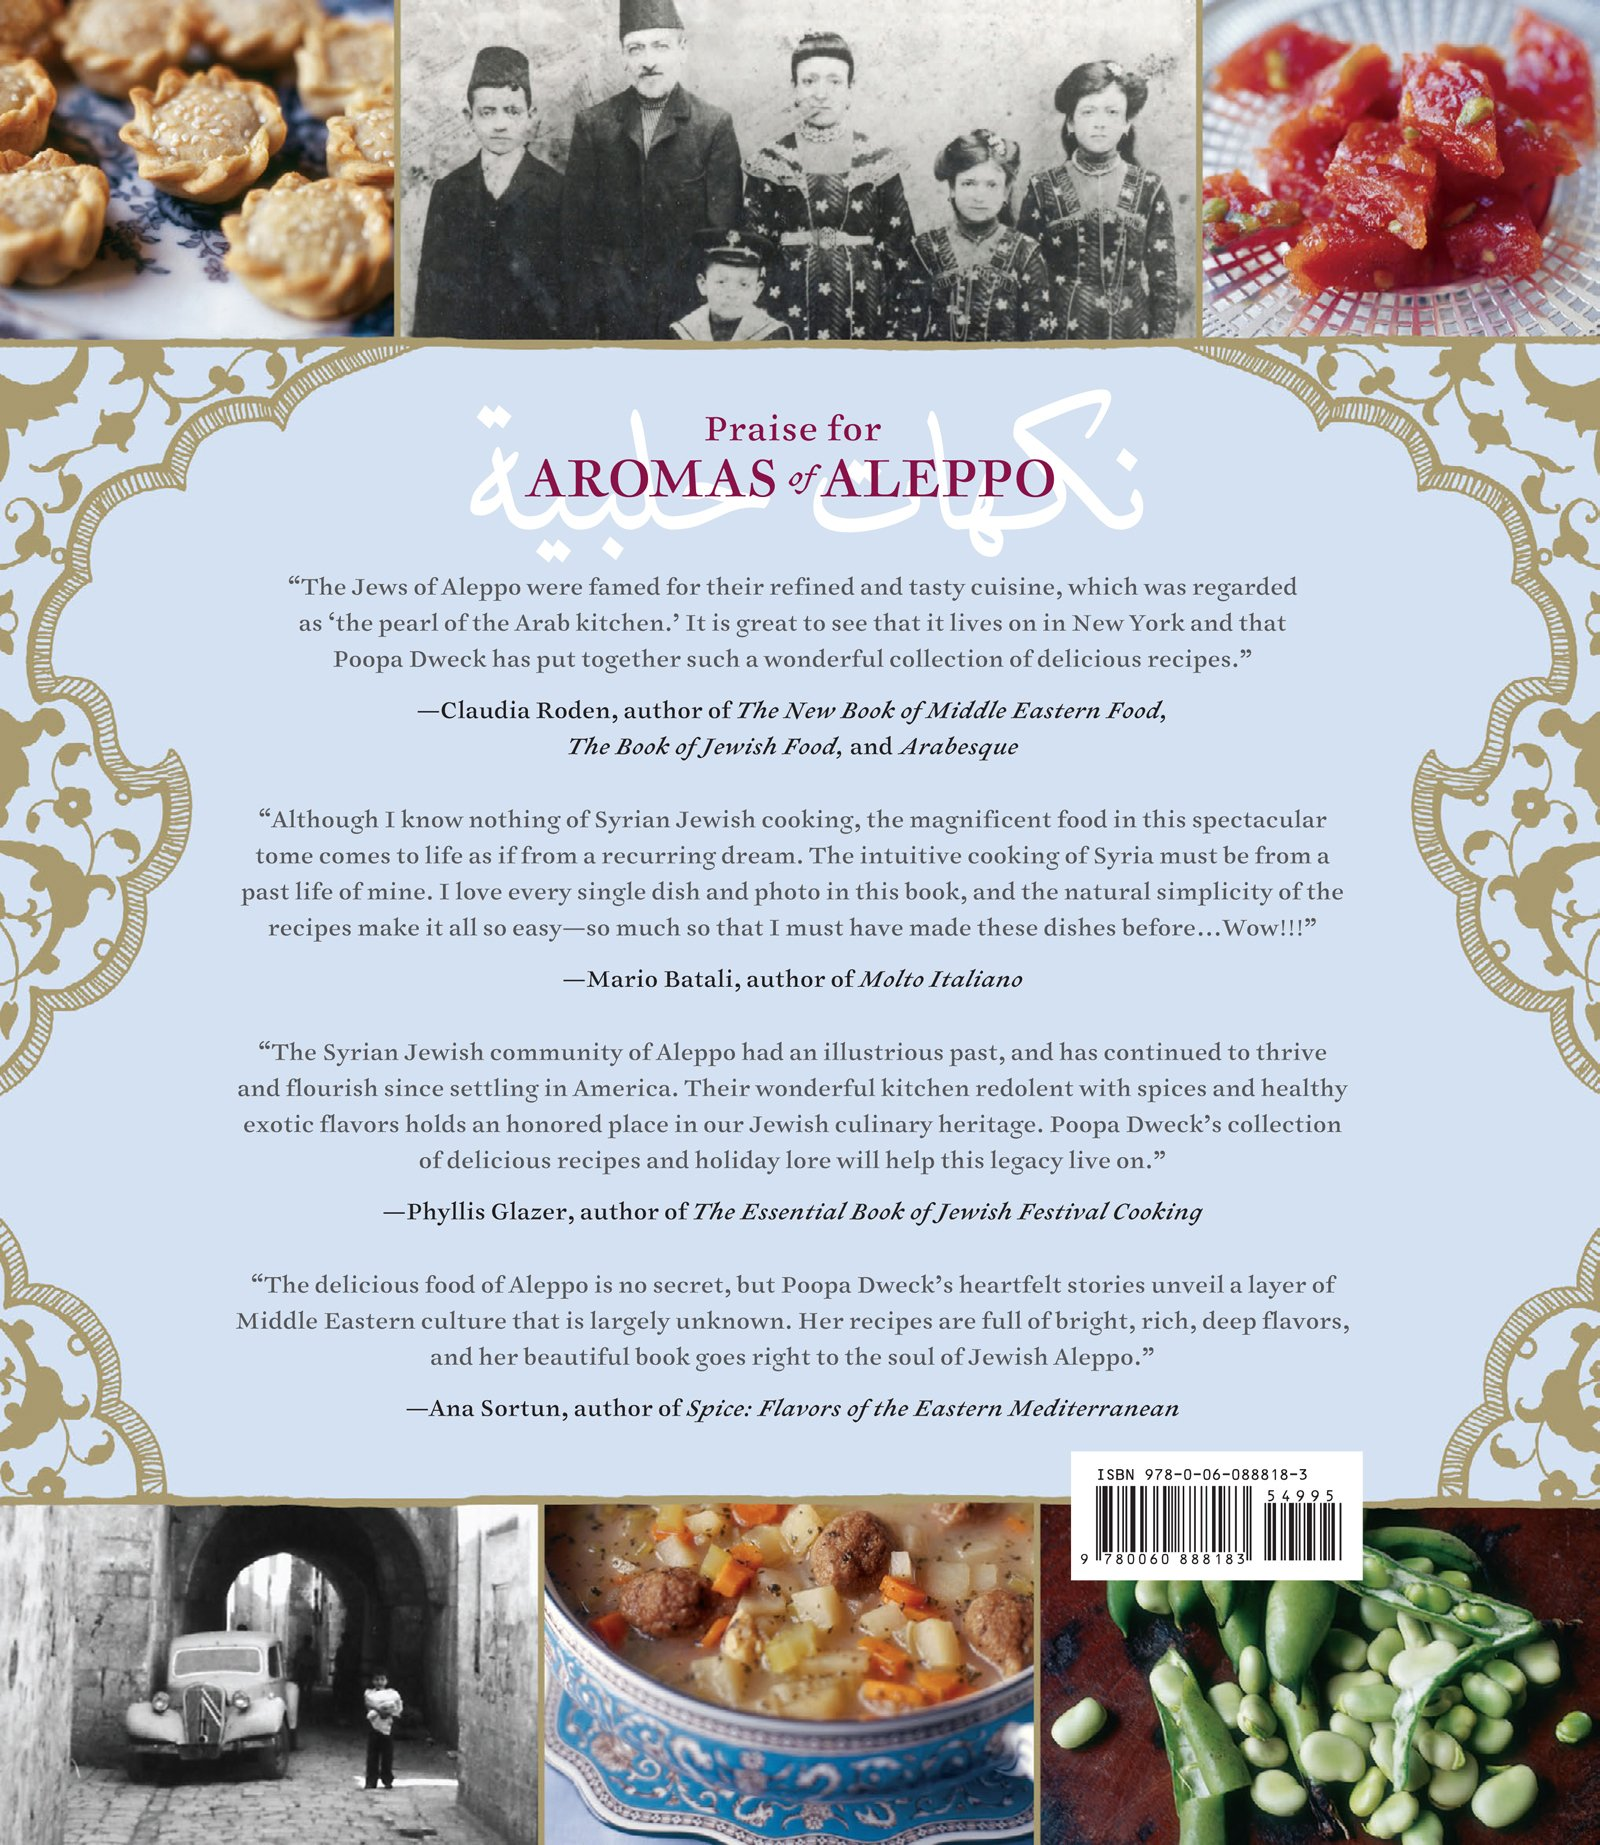 Aromas of aleppo the legendary cuisine of syrian jews amazon aromas of aleppo the legendary cuisine of syrian jews amazon poopa dweck libros en idiomas extranjeros forumfinder Images